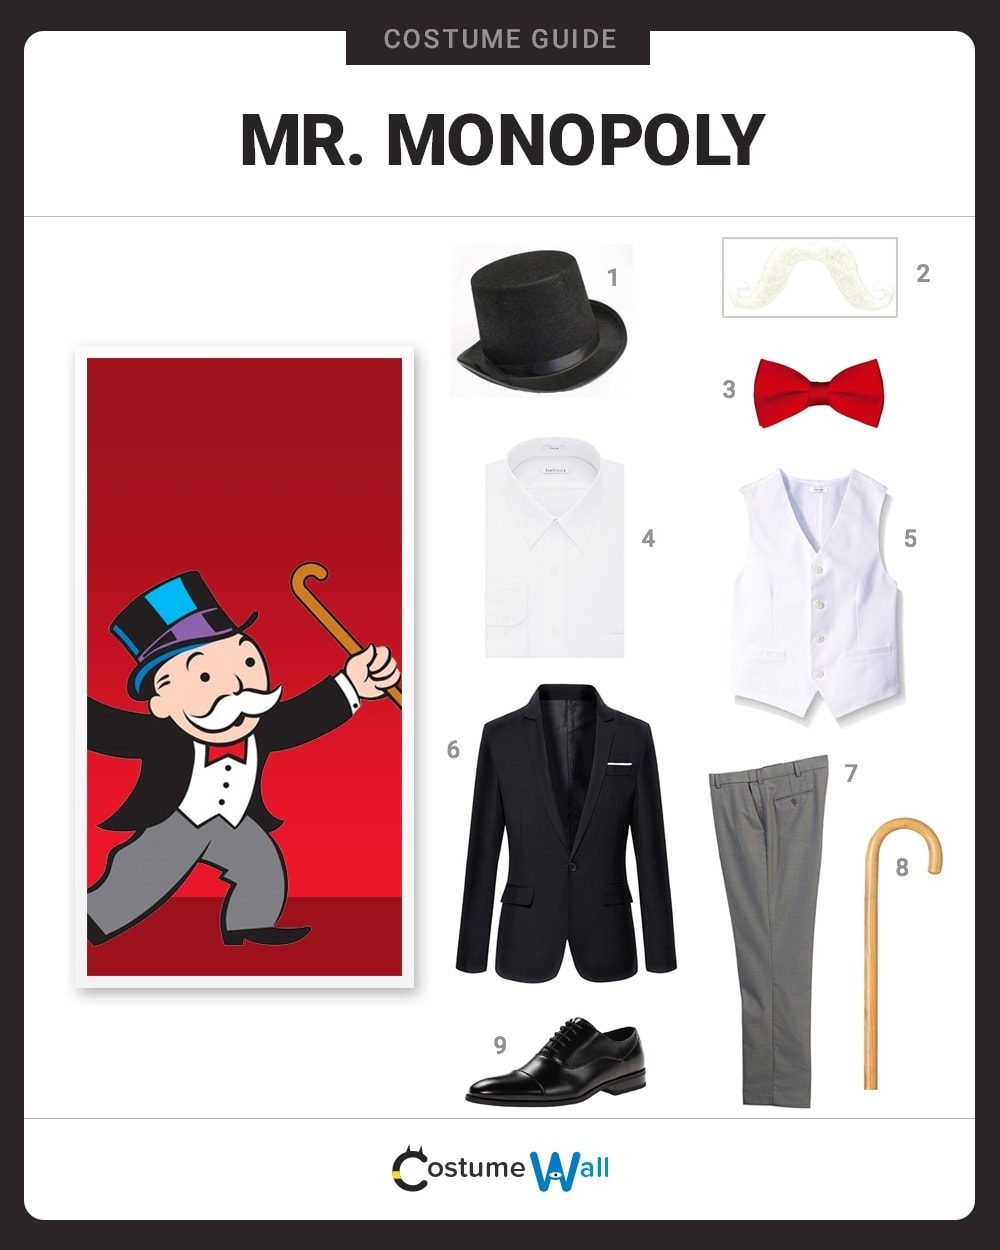 Mr. Monopoly Costume Guide